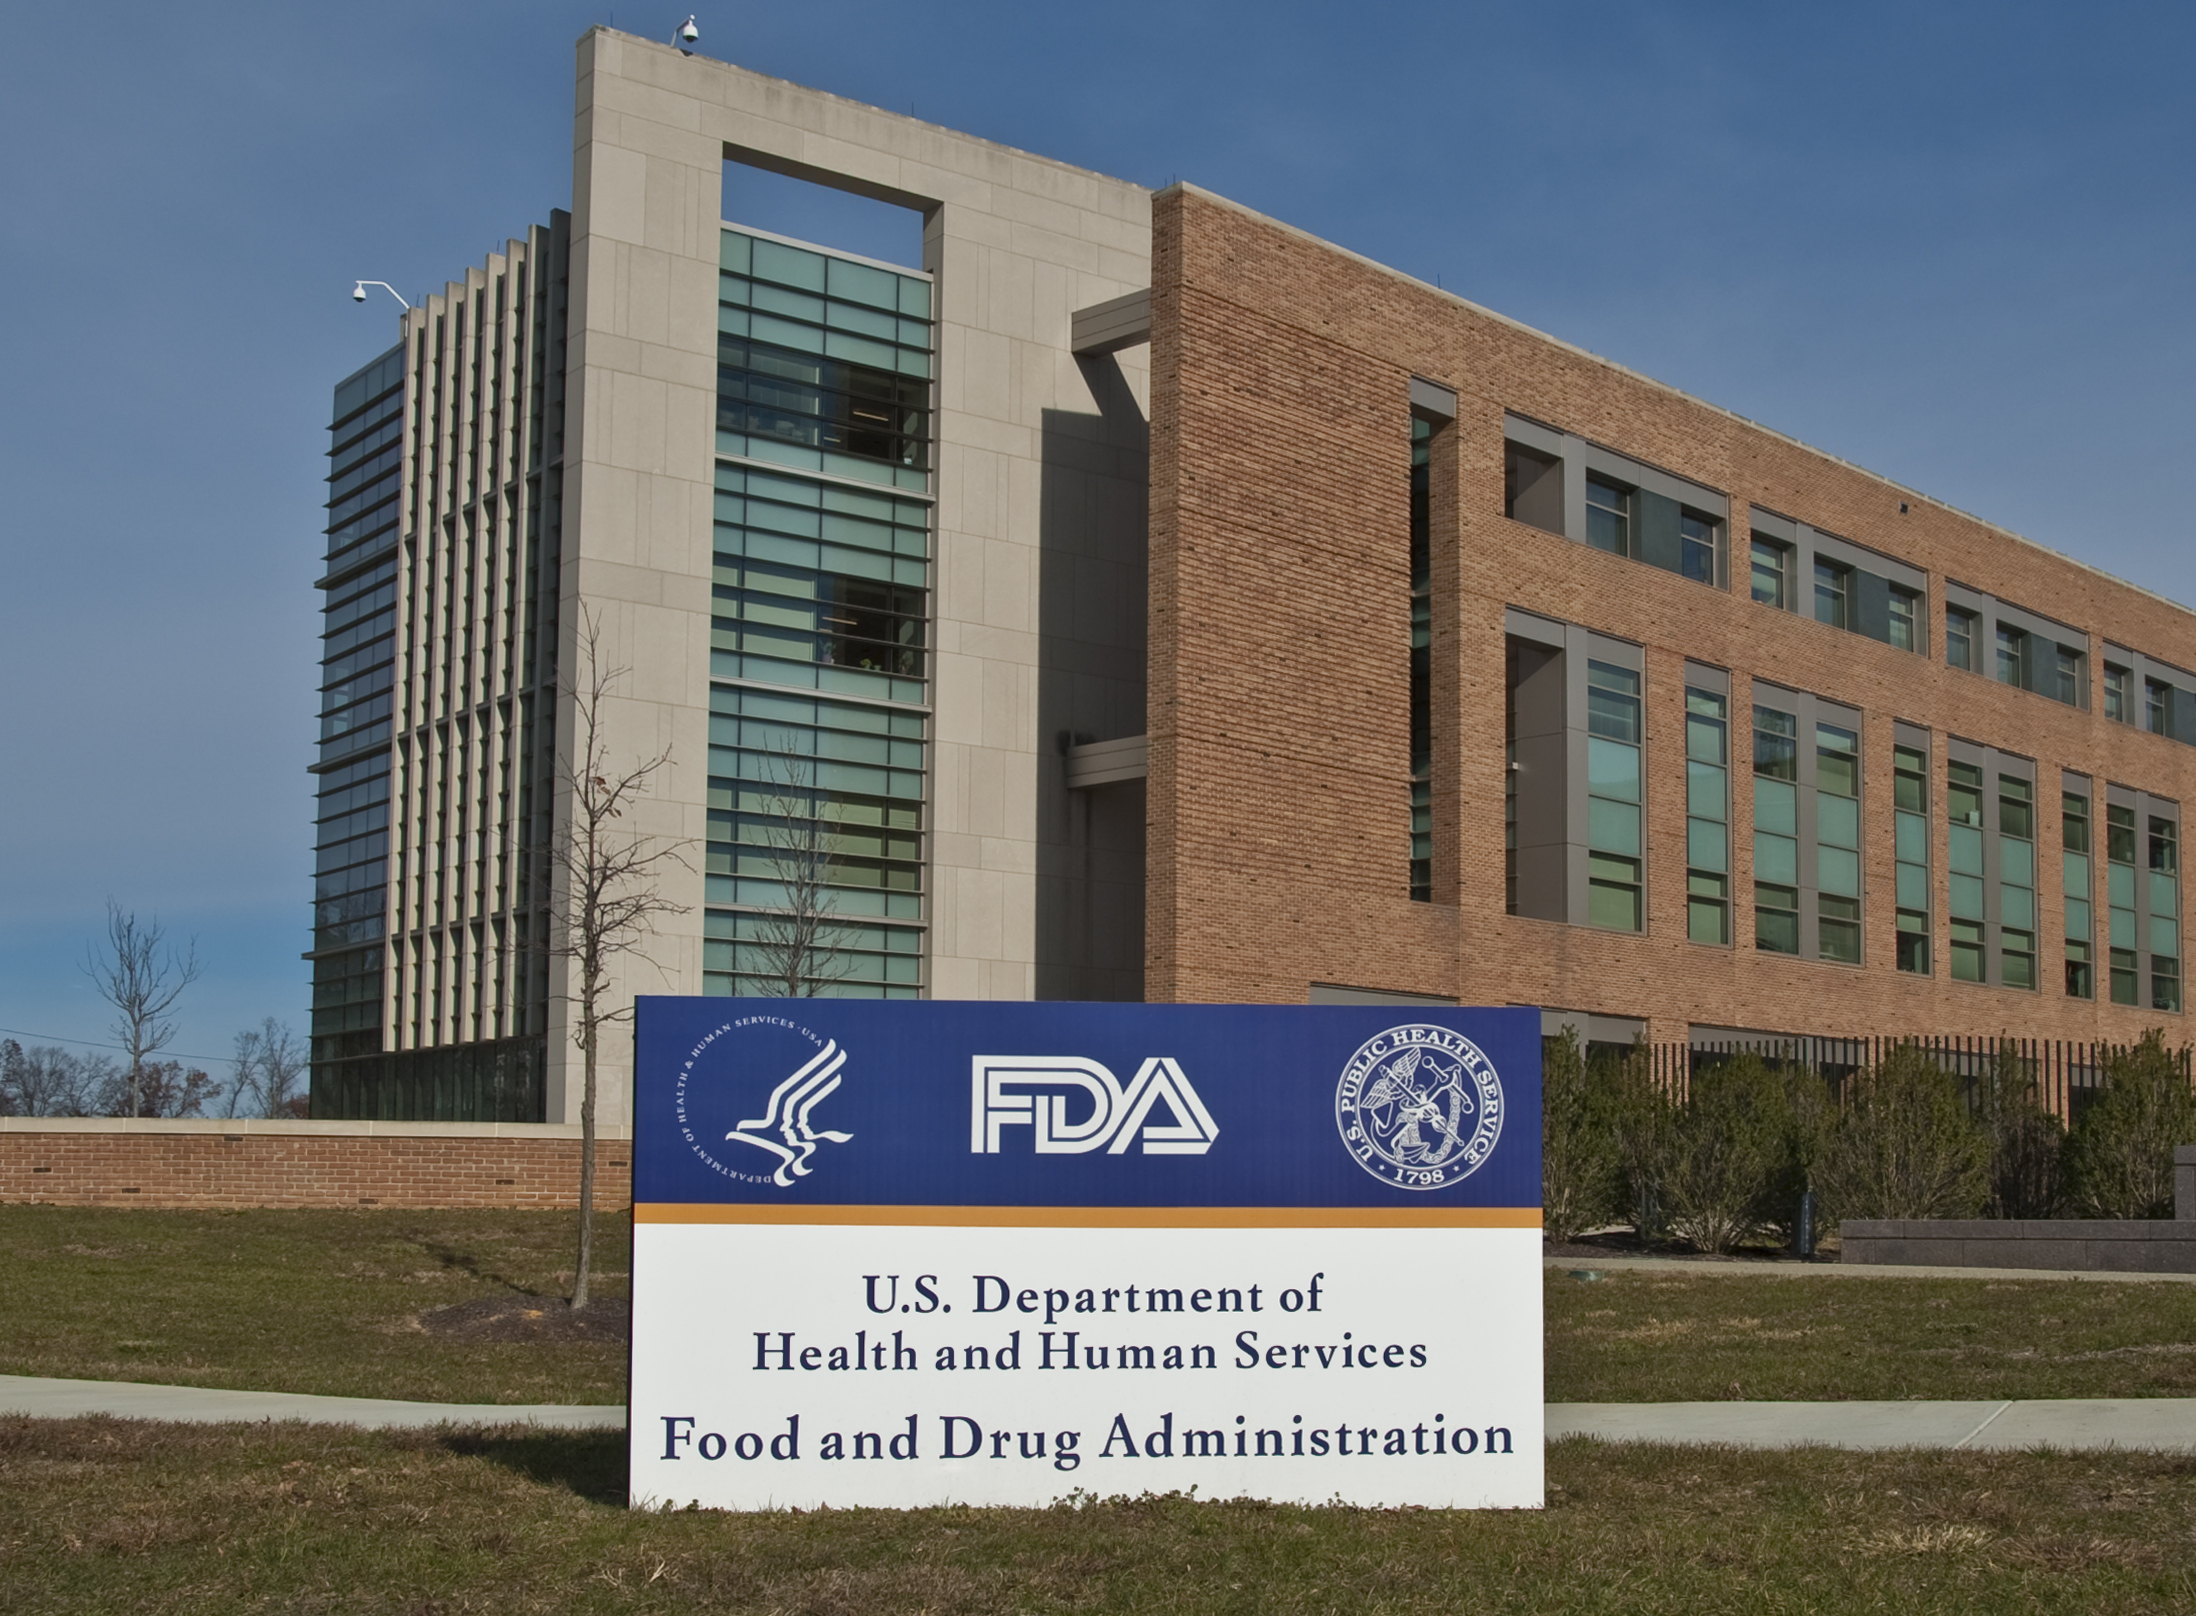 Increased PDUFA, decreased BsUFA fees revealed by FDA for FY